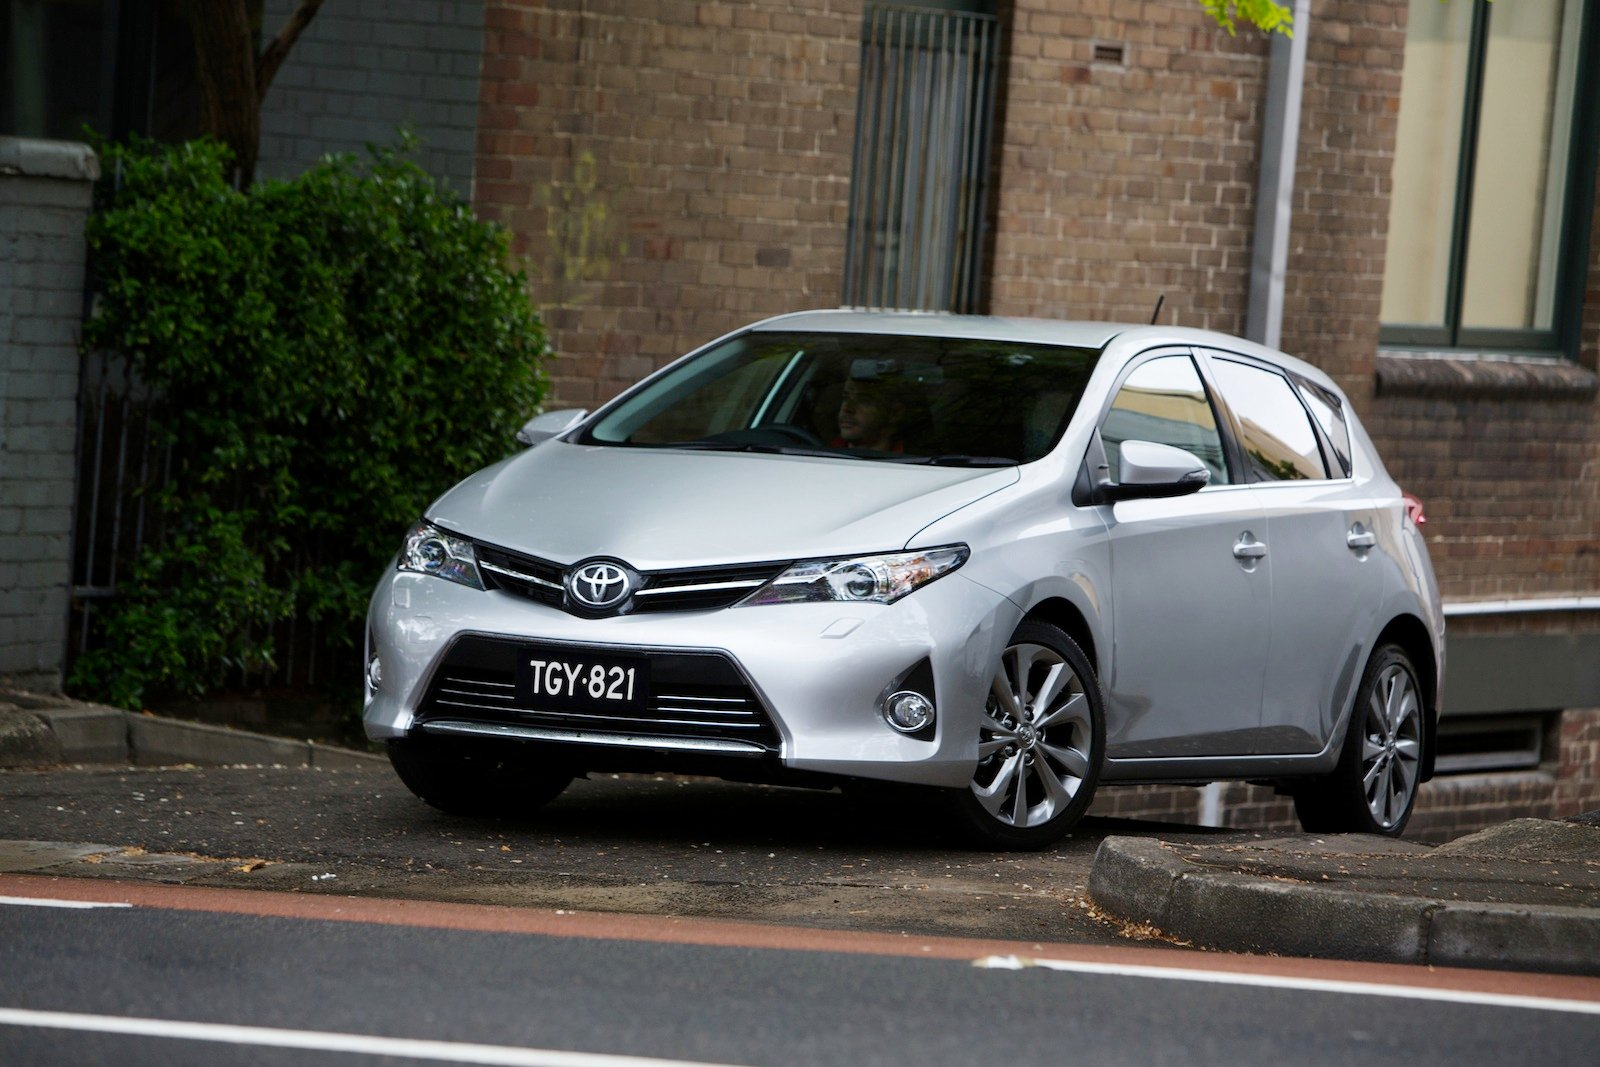 2013 toyota corolla review photos caradvice. Black Bedroom Furniture Sets. Home Design Ideas